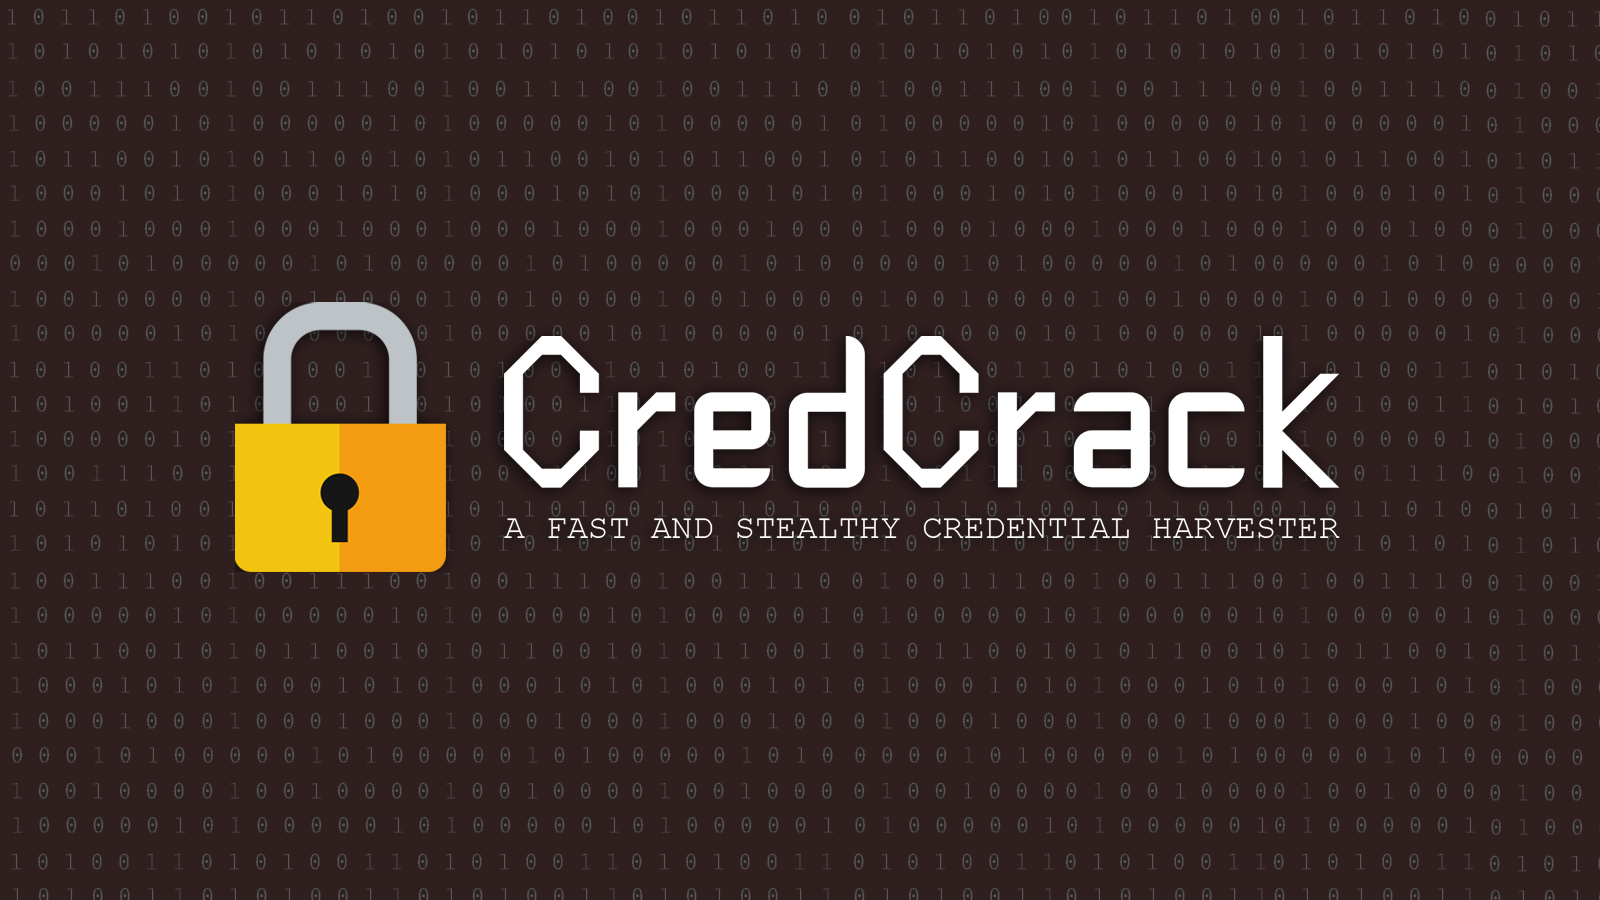 CredCrack - A Fast and Stealthy Credential Harvester